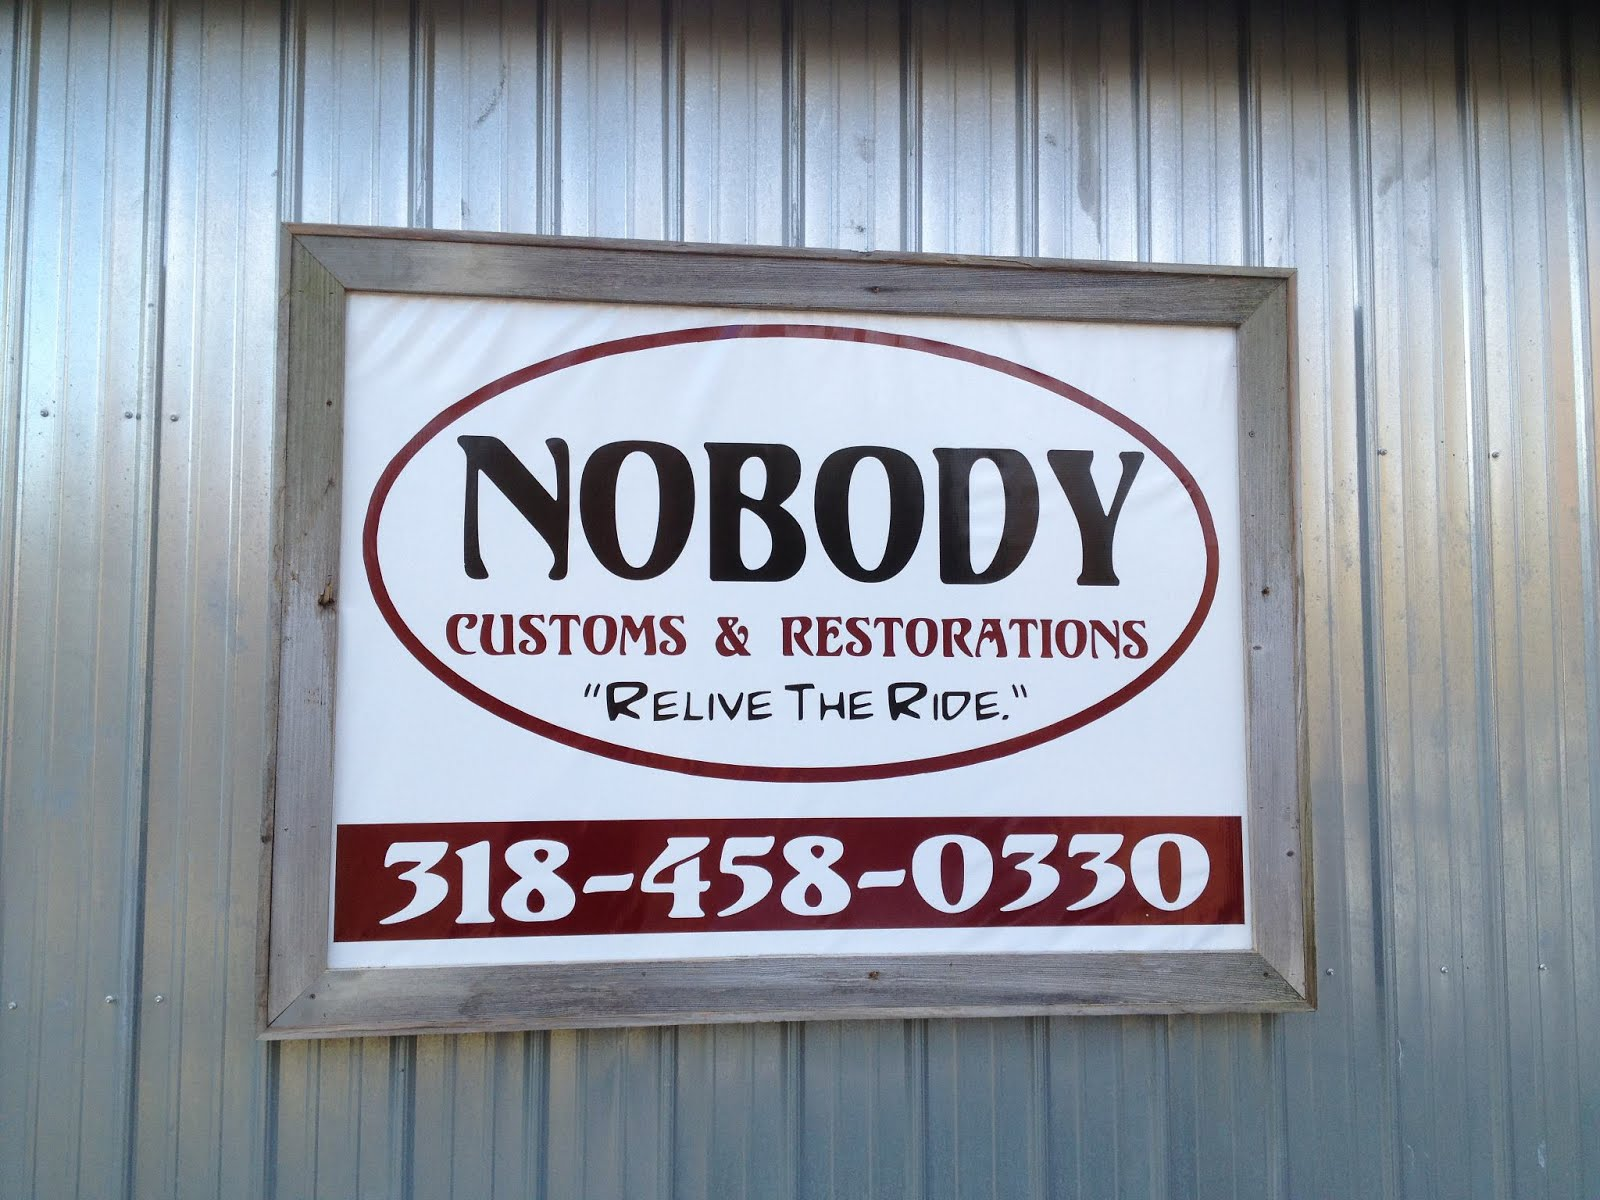 Nobody Customs & Restorations